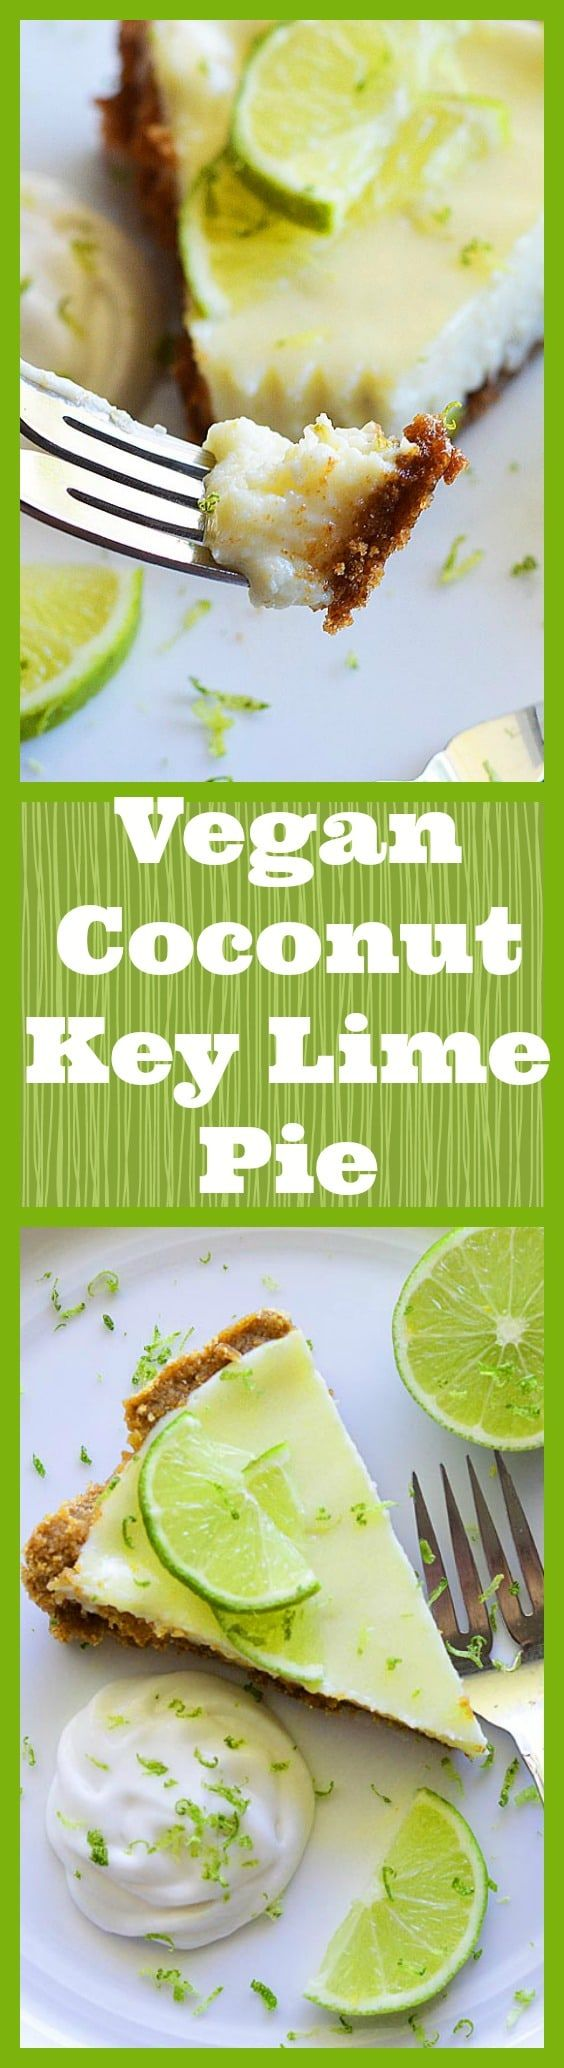 Vegan Coconut Key Lime Pie